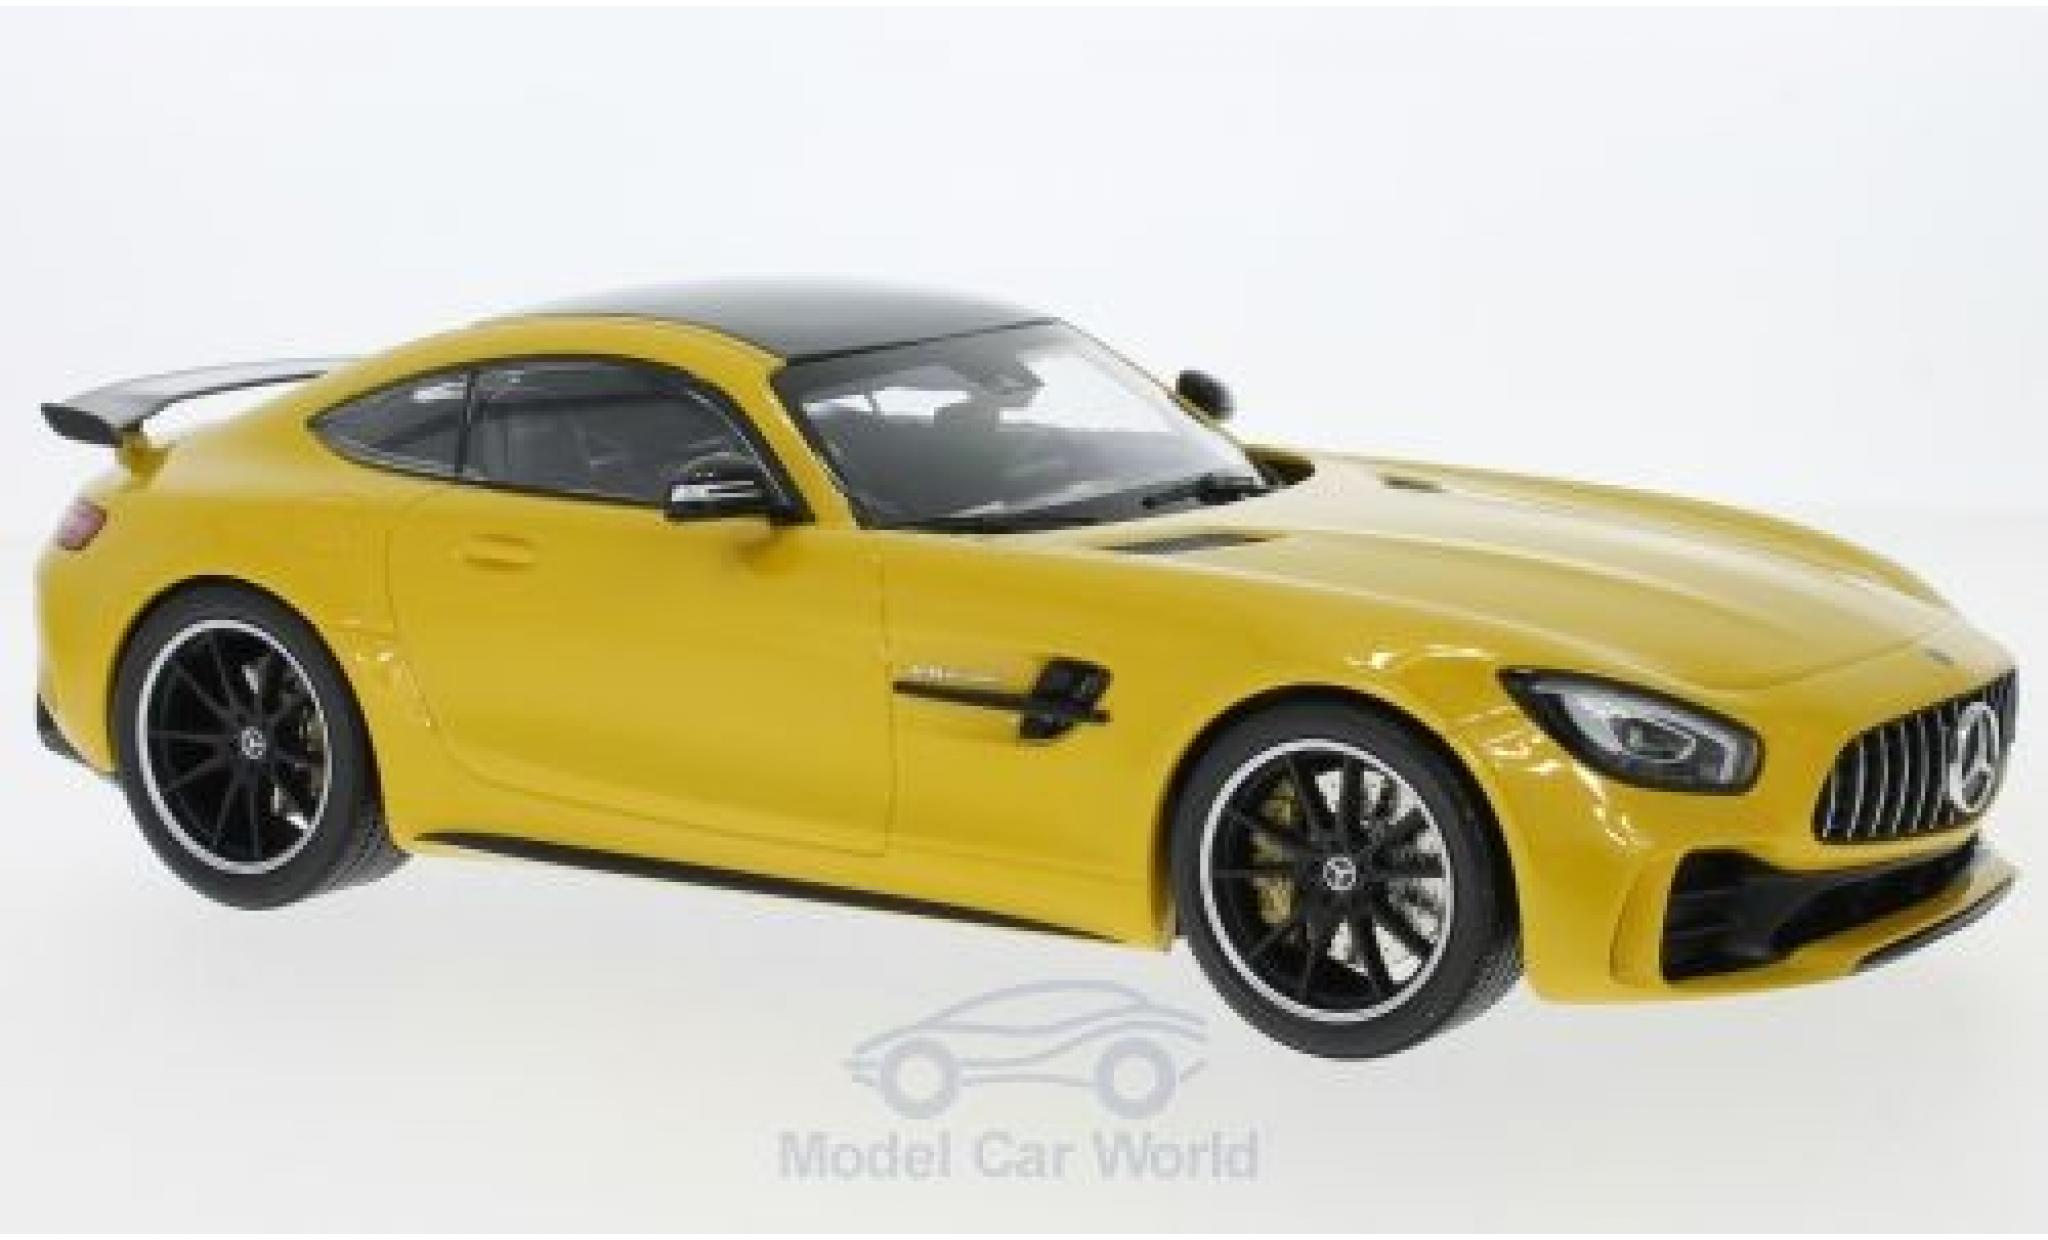 Mercedes AMG GT 1/18 Minichamps -R yellow/black 2017